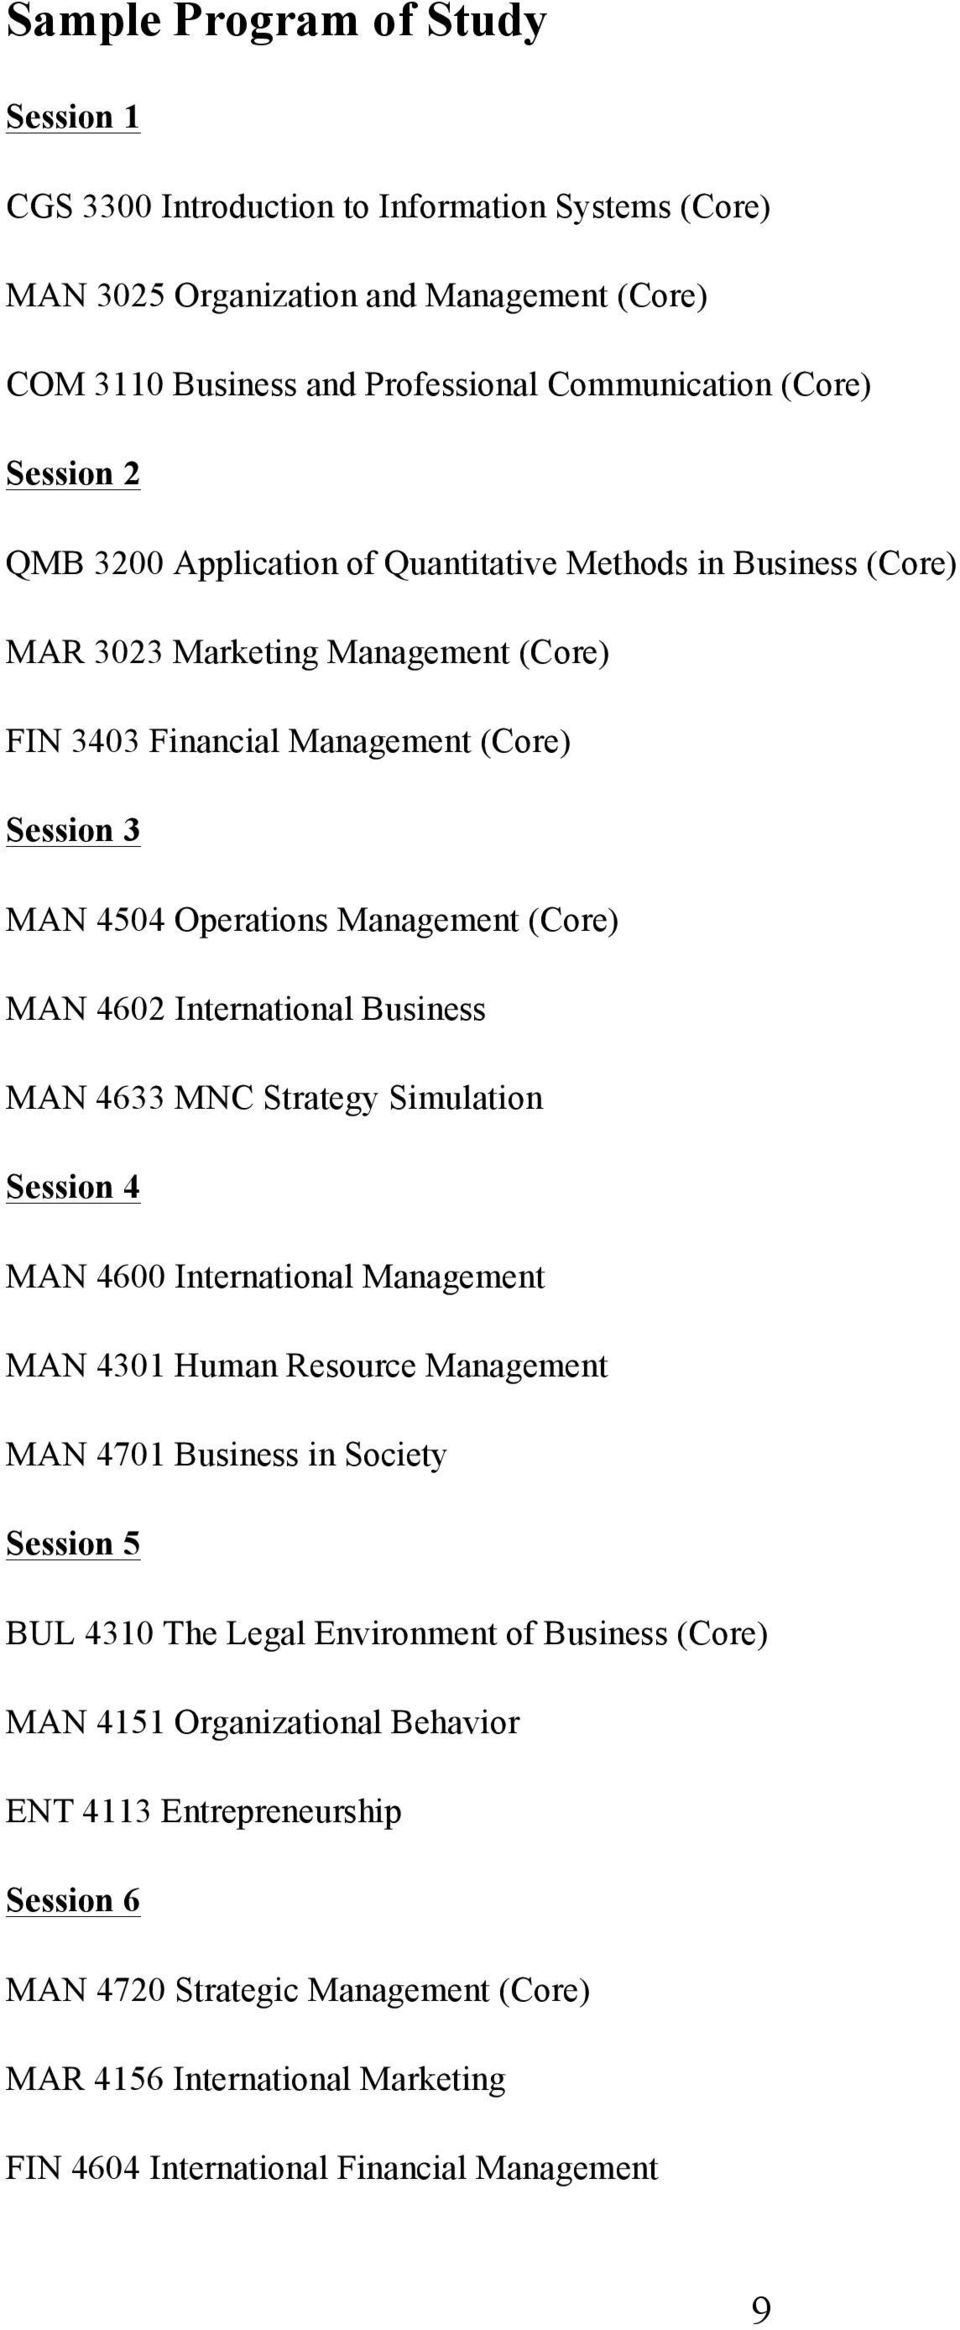 International Business MAN 4633 MNC Strategy Simulation Session 4 MAN 4600 International Management MAN 4301 Human Resource Management MAN 4701 Business in Society Session 5 BUL 4310 The Legal